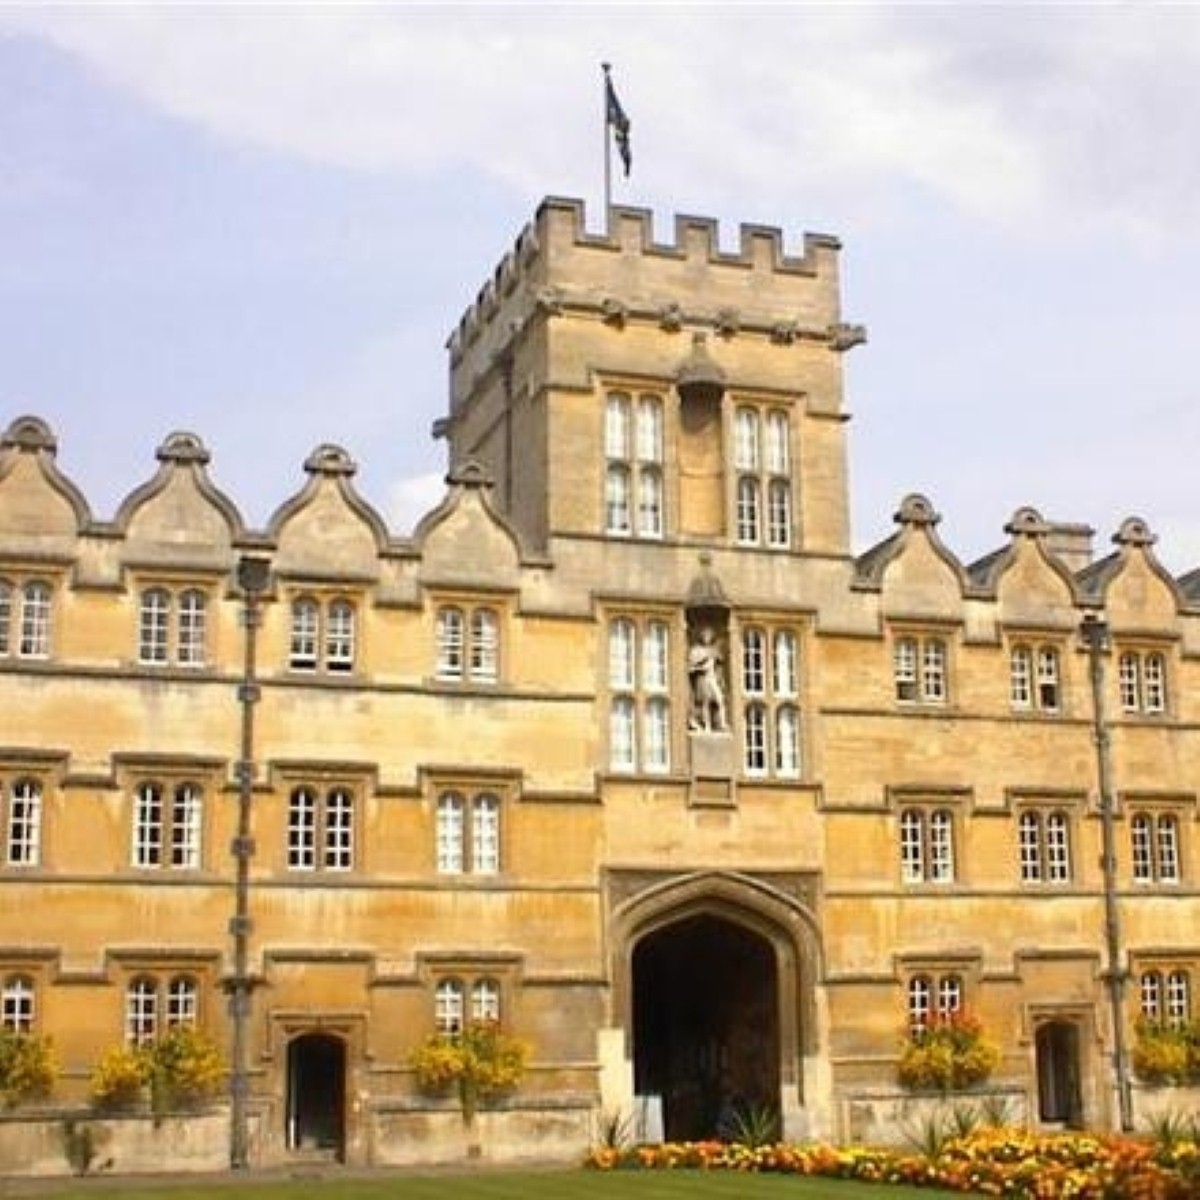 University College, Oxford, will be subject to competition just like everyone else